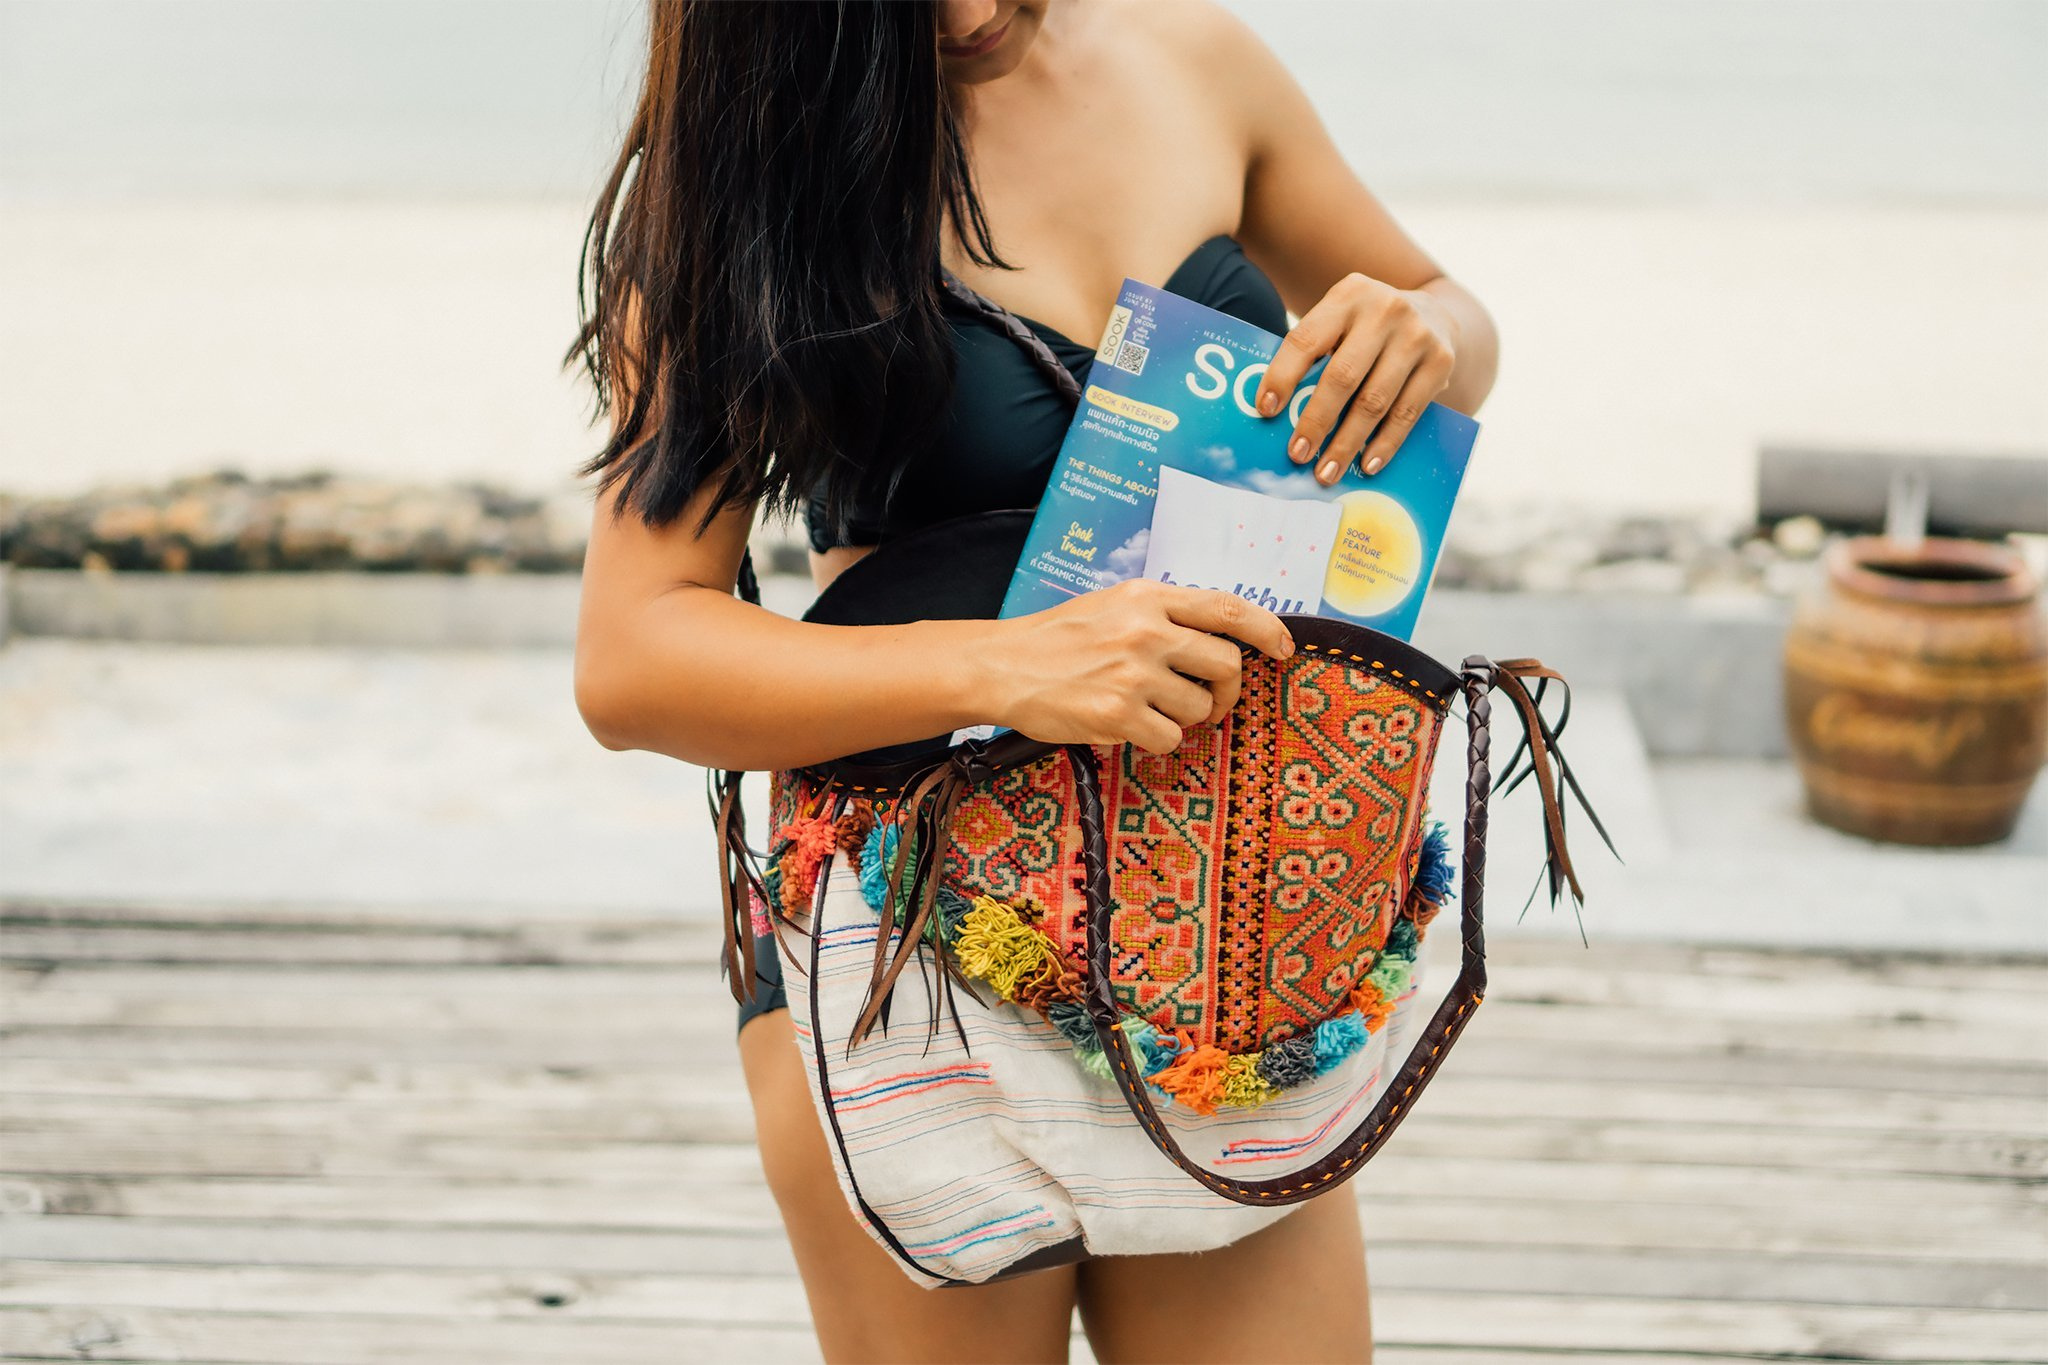 Changnoi One of a Kind Handcrafted Beach Tote Bag for Women, Vintage Hmong Embroidery Shoulder Bag - handmade-bags